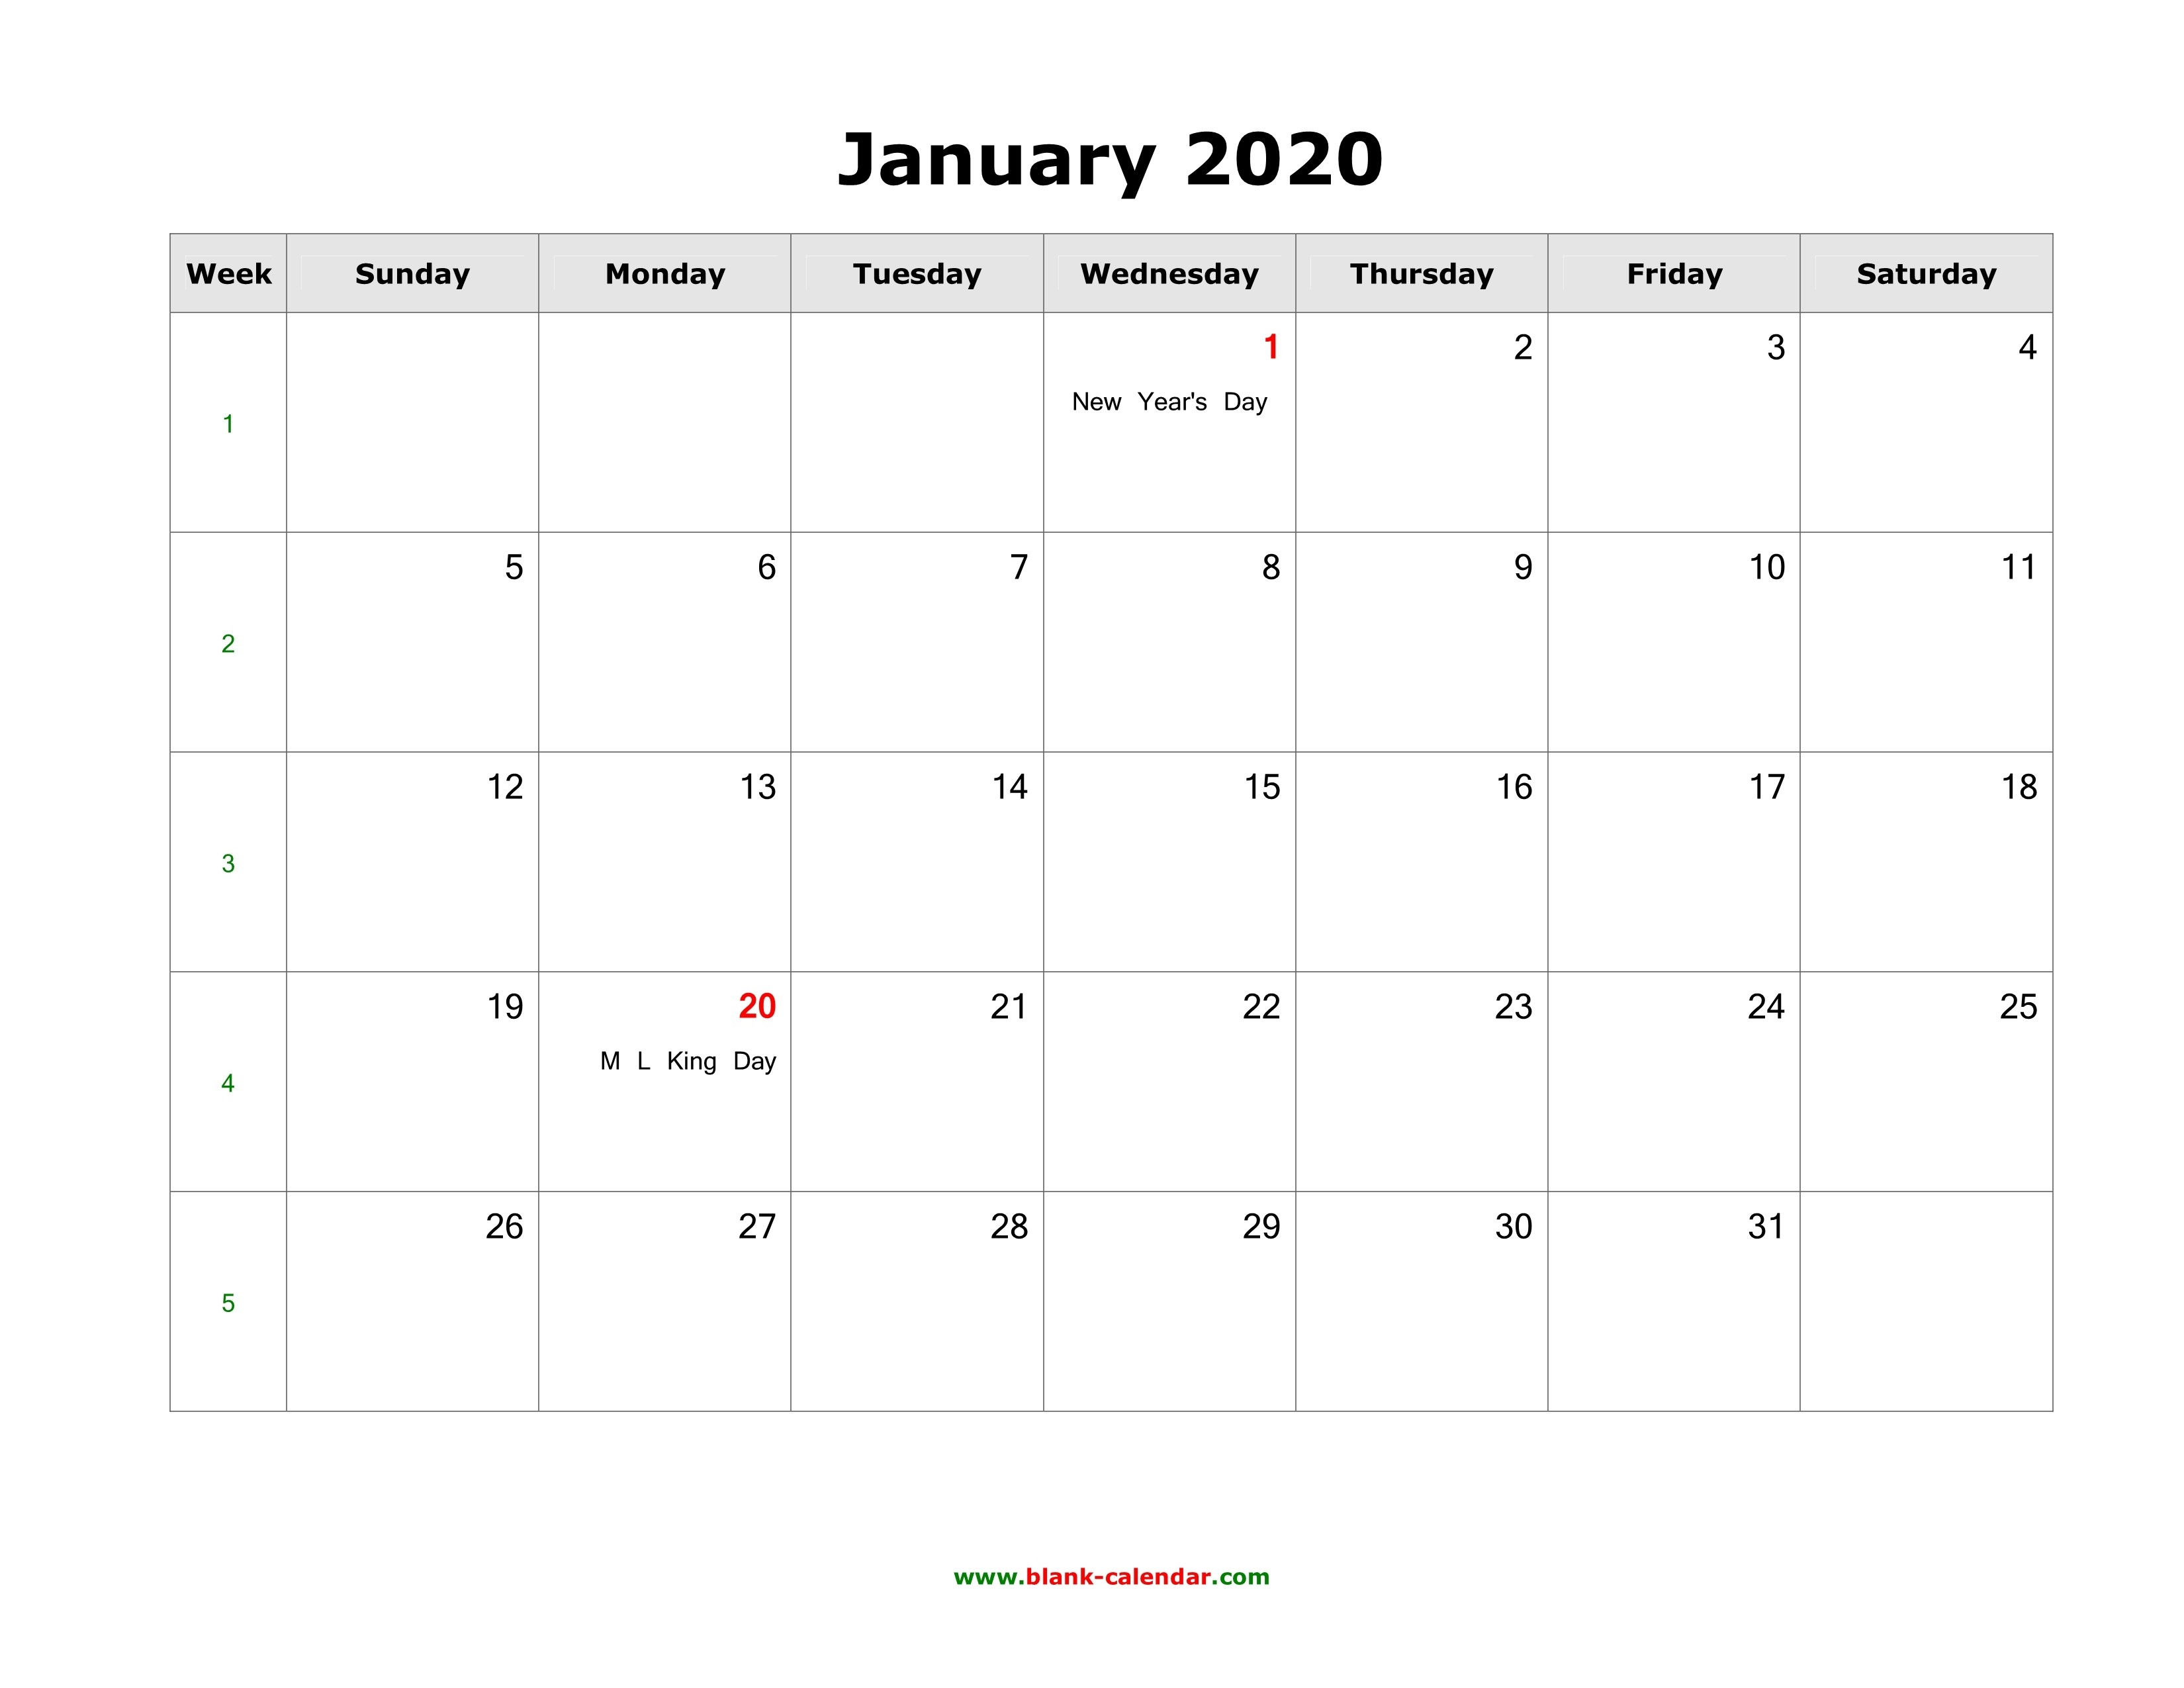 Download January 2020 Blank Calendar With Us Holidays-January 2020 Calendar With Holidays